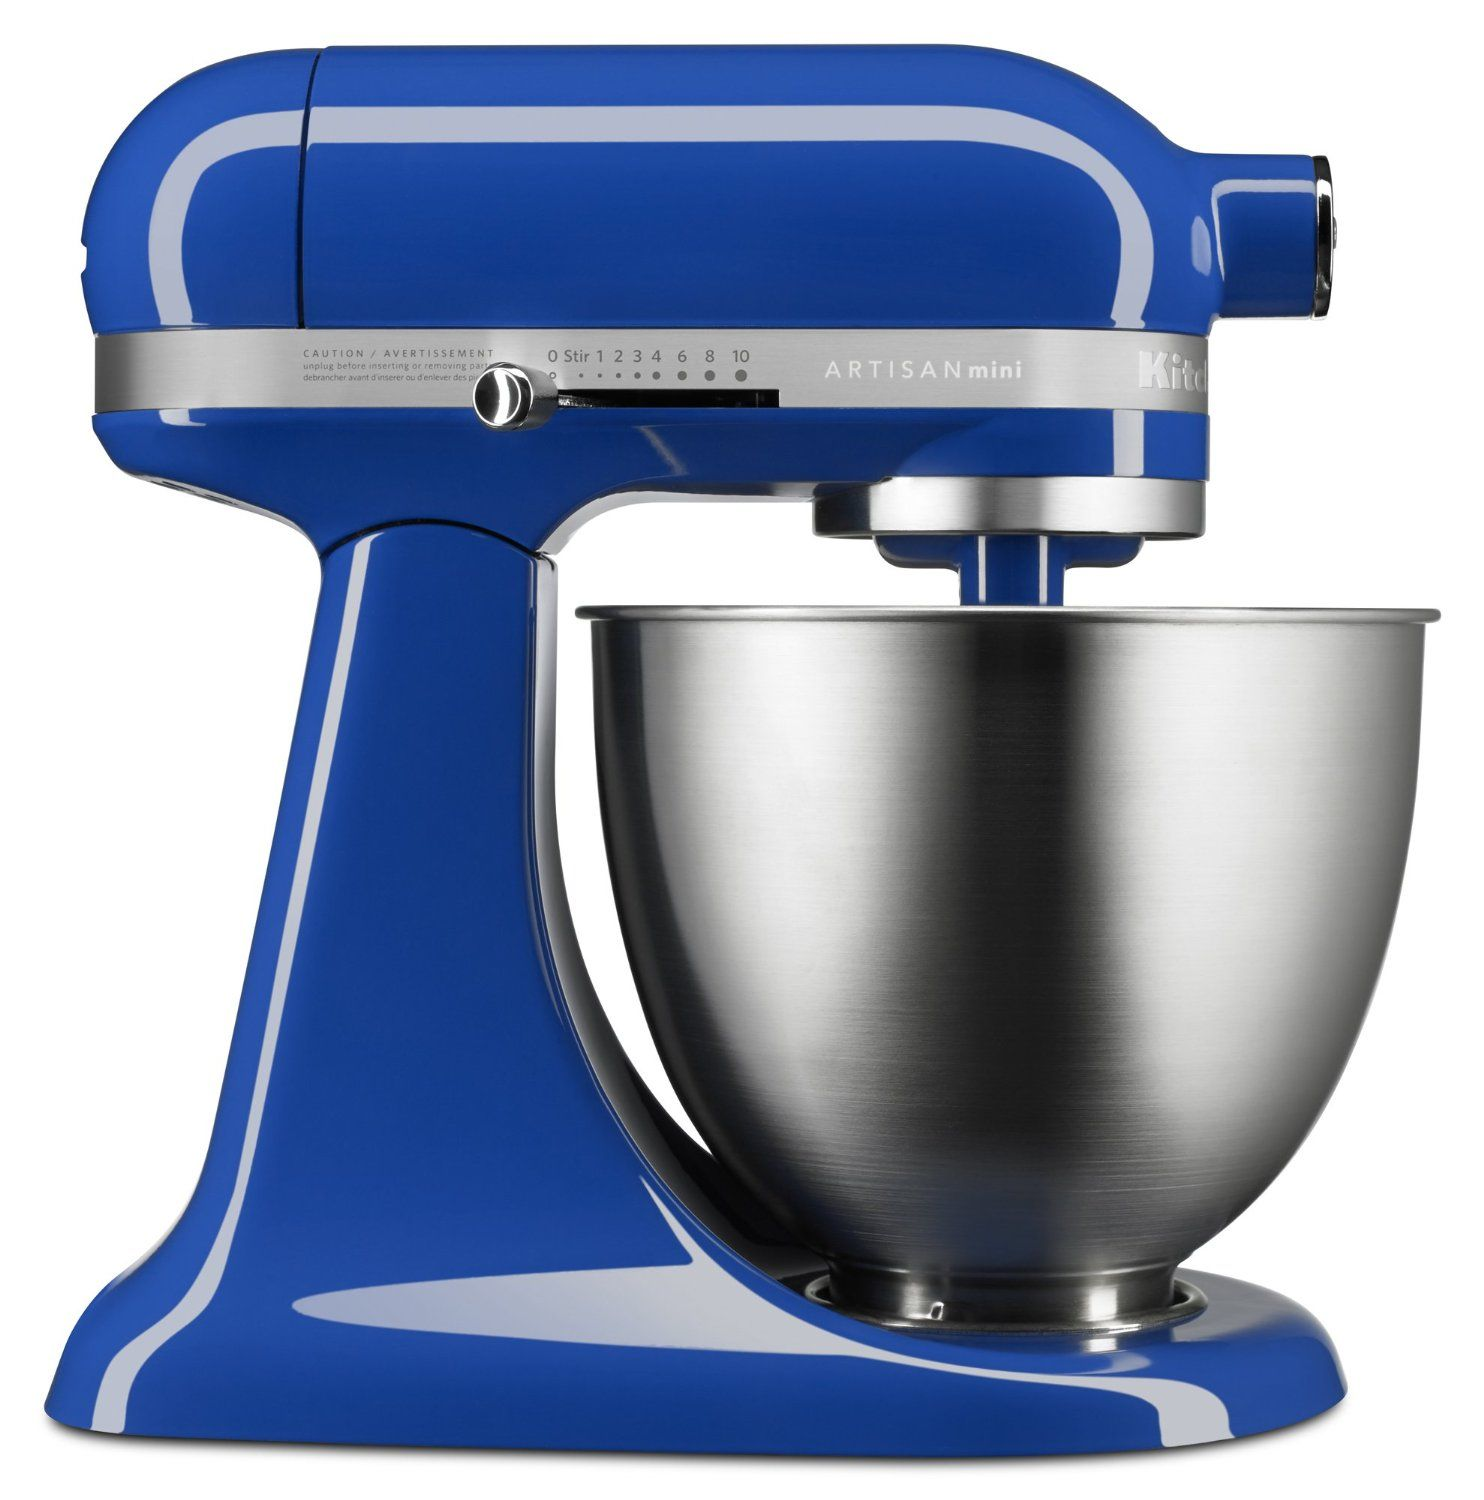 Bright And Vibrant This Twilight Blue Artisan Mini Mixer Would Add A Dash Of Color To Any Kitche Kitchenaid Artisan Stand Mixer Reviews Kitchenaid Stand Mixer